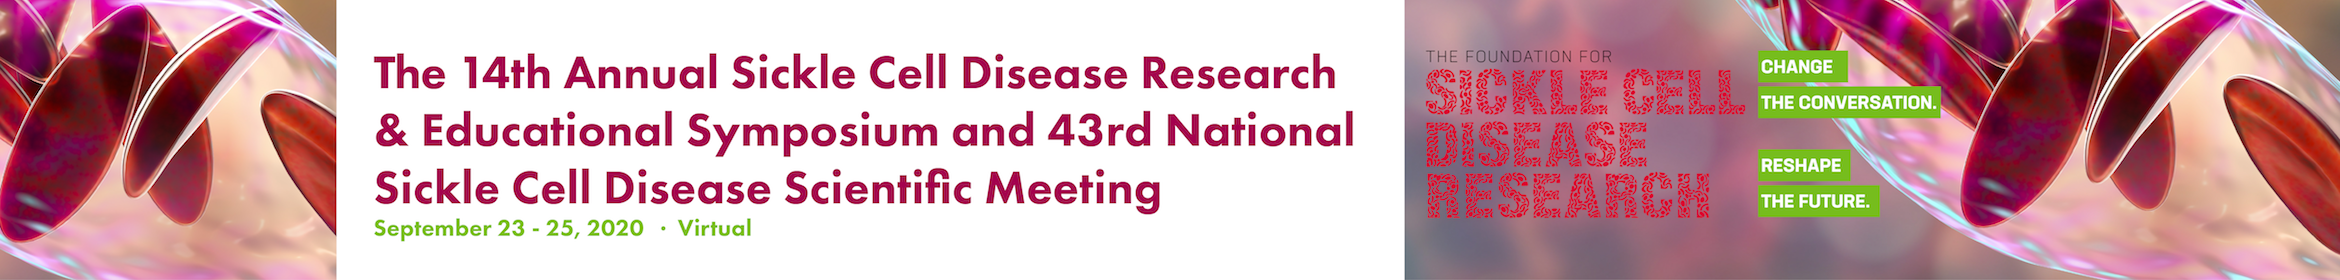 14th Annual Sickle Cell Disease Research & Educational Symposium & 43rd National SCD Scientific Mtg  Main banner